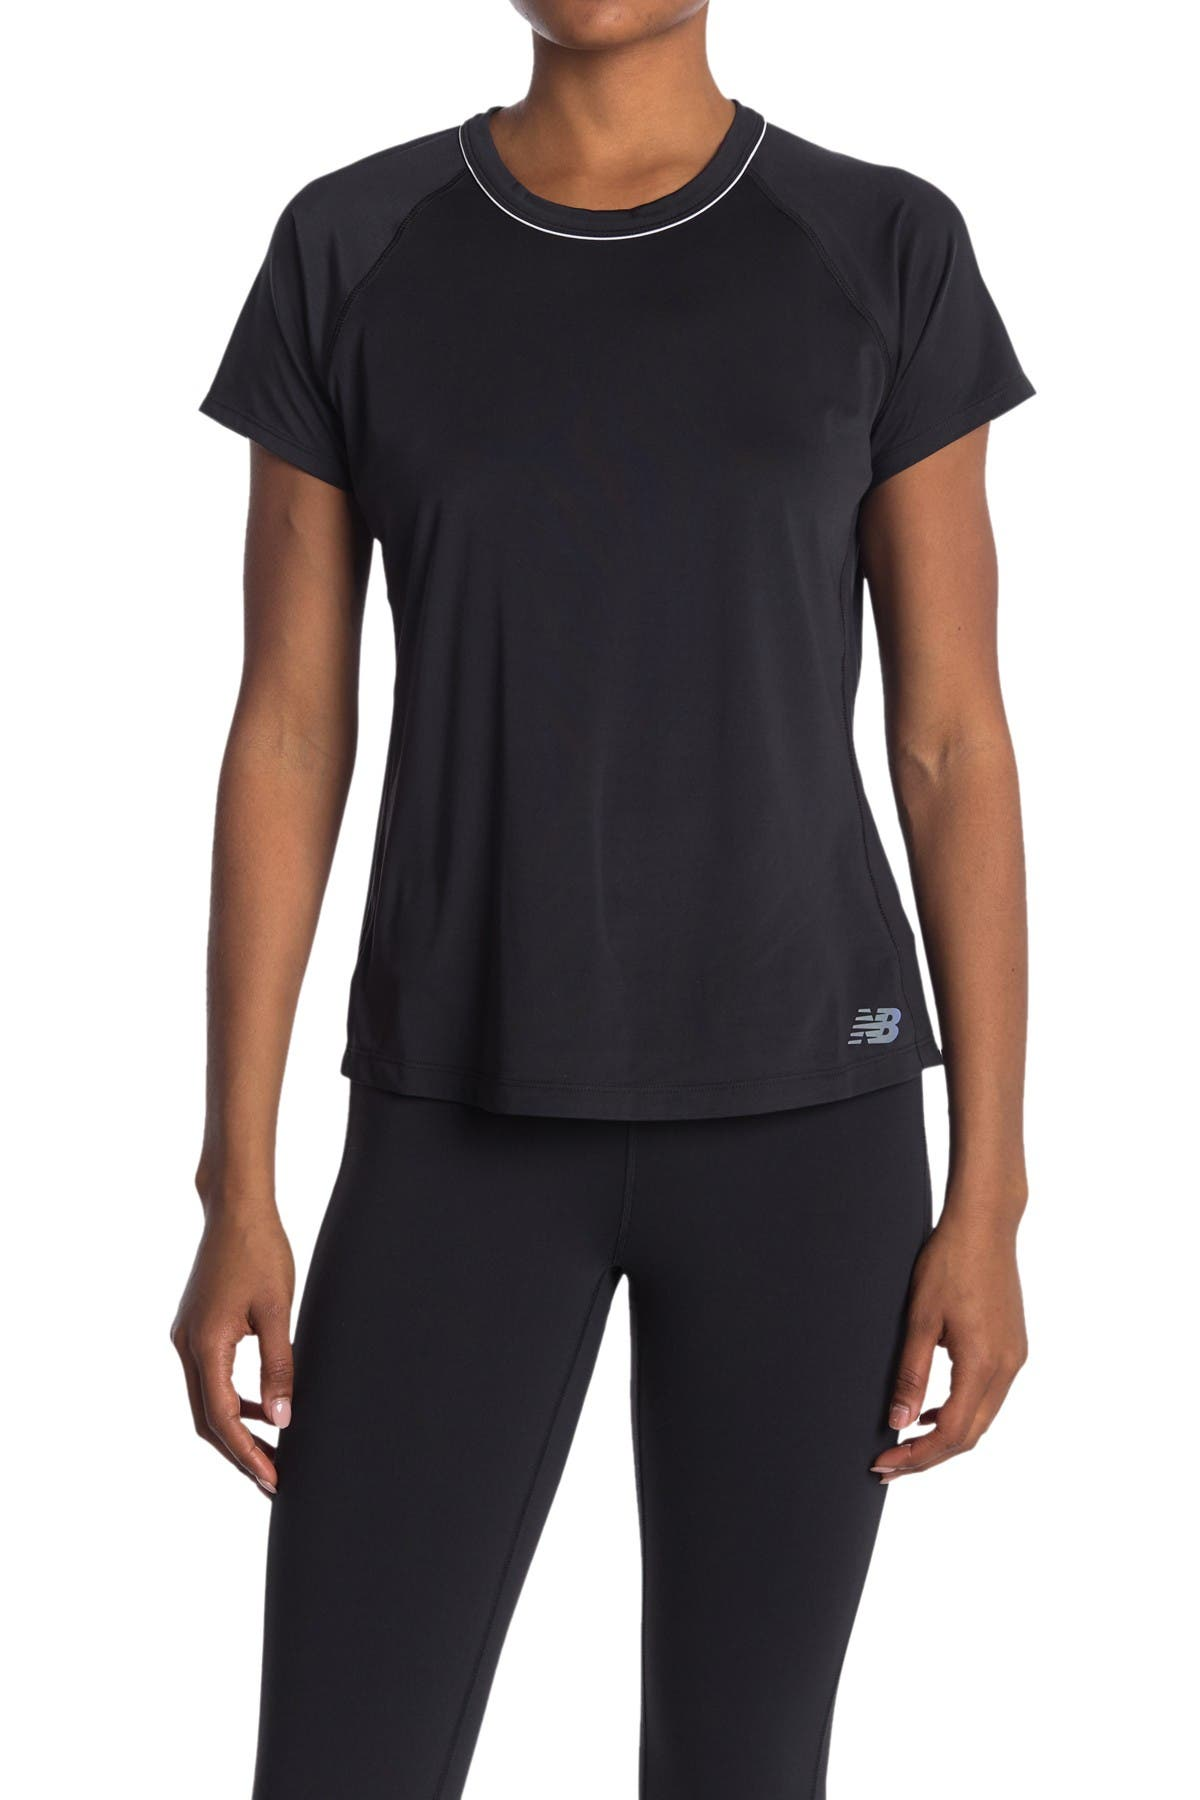 Image of New Balance Seasonless Short Sleeve T-Shirt